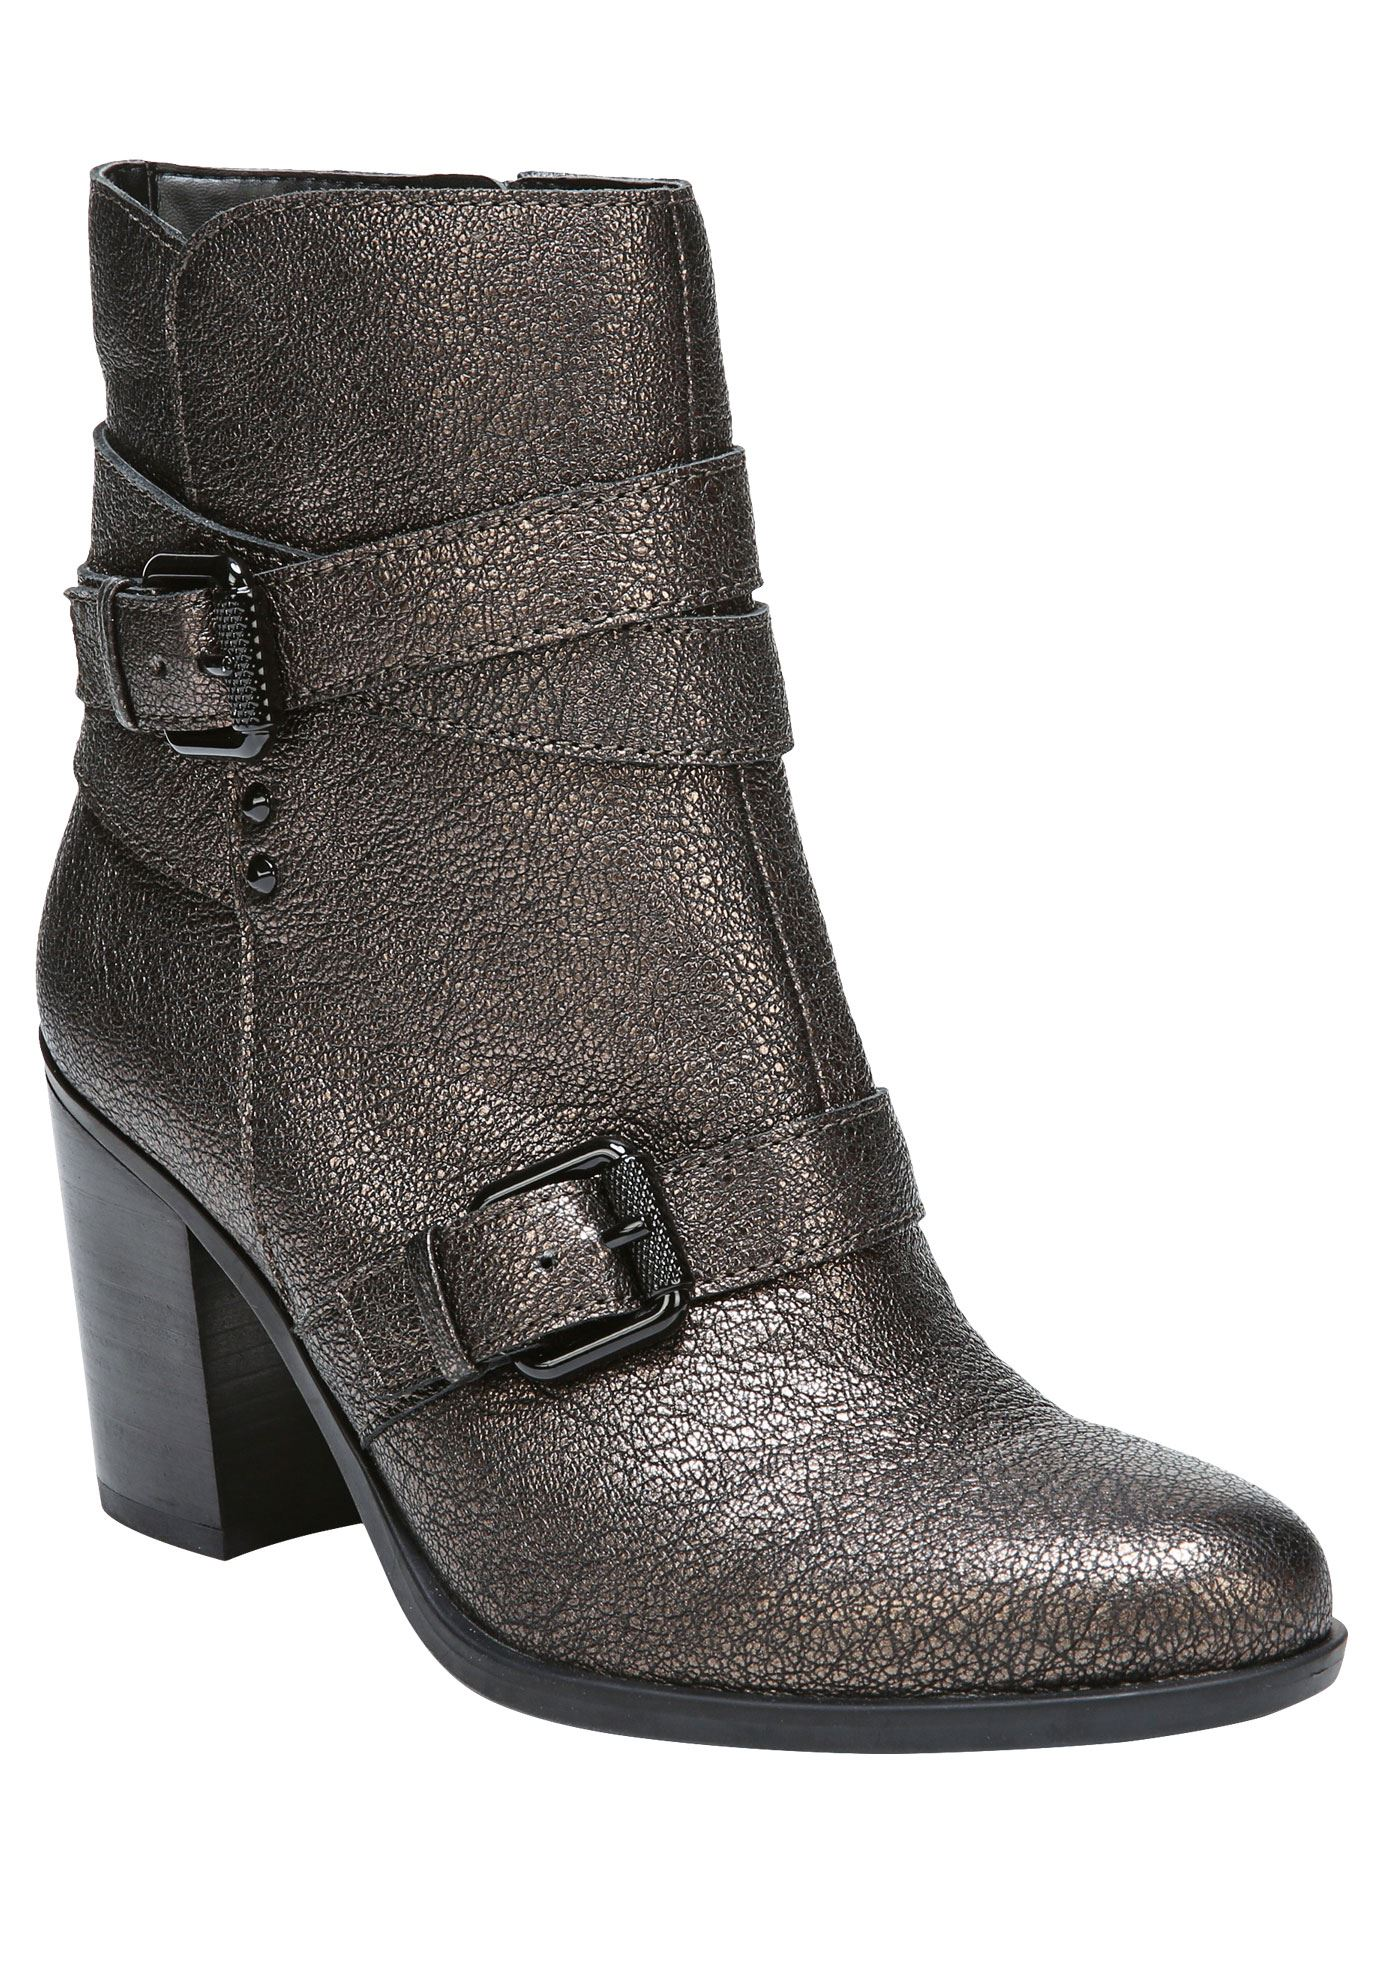 Karlie Booties by Naturalizer®,